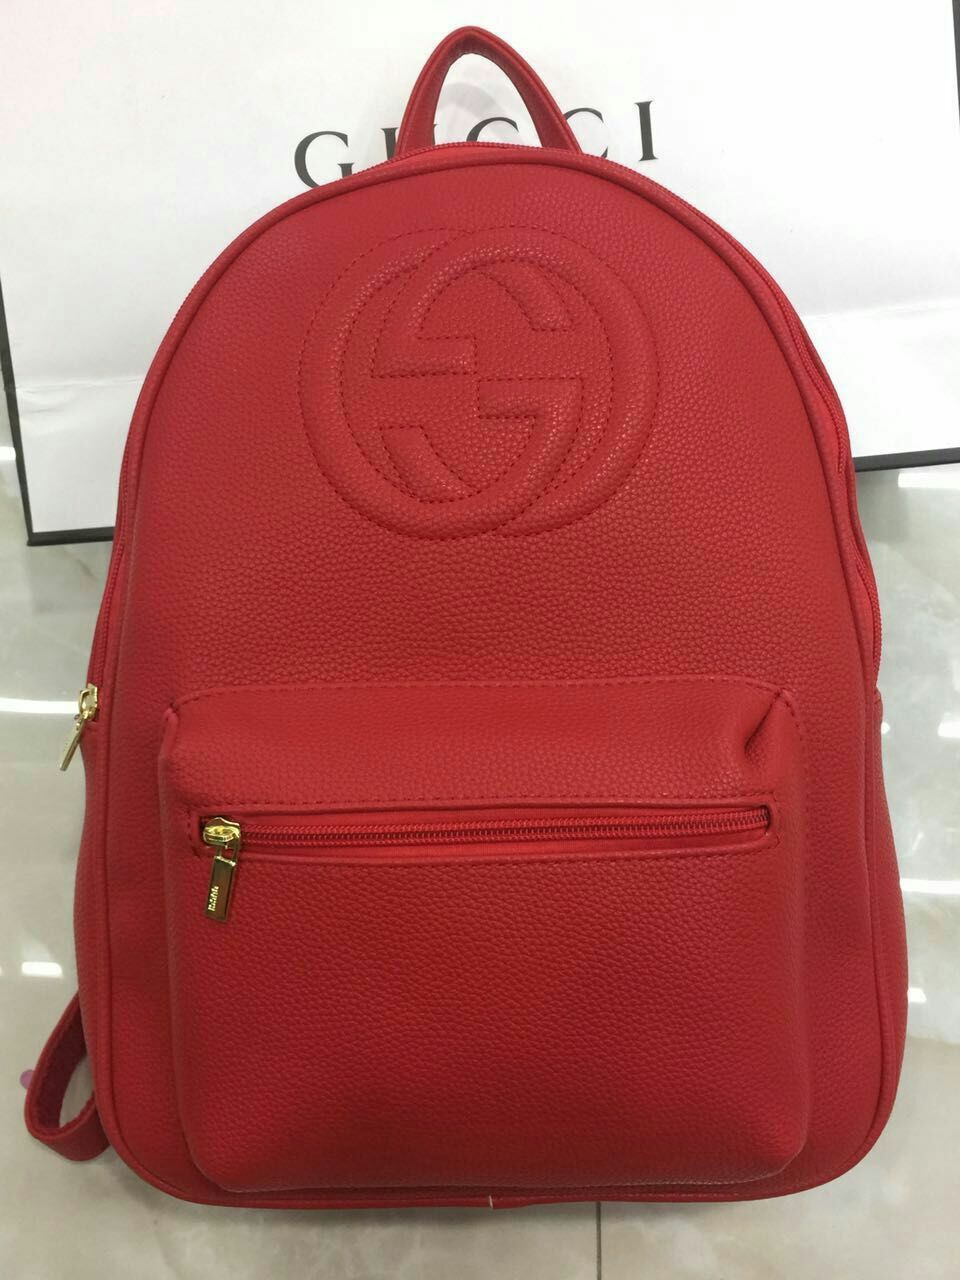 red gucci backpack